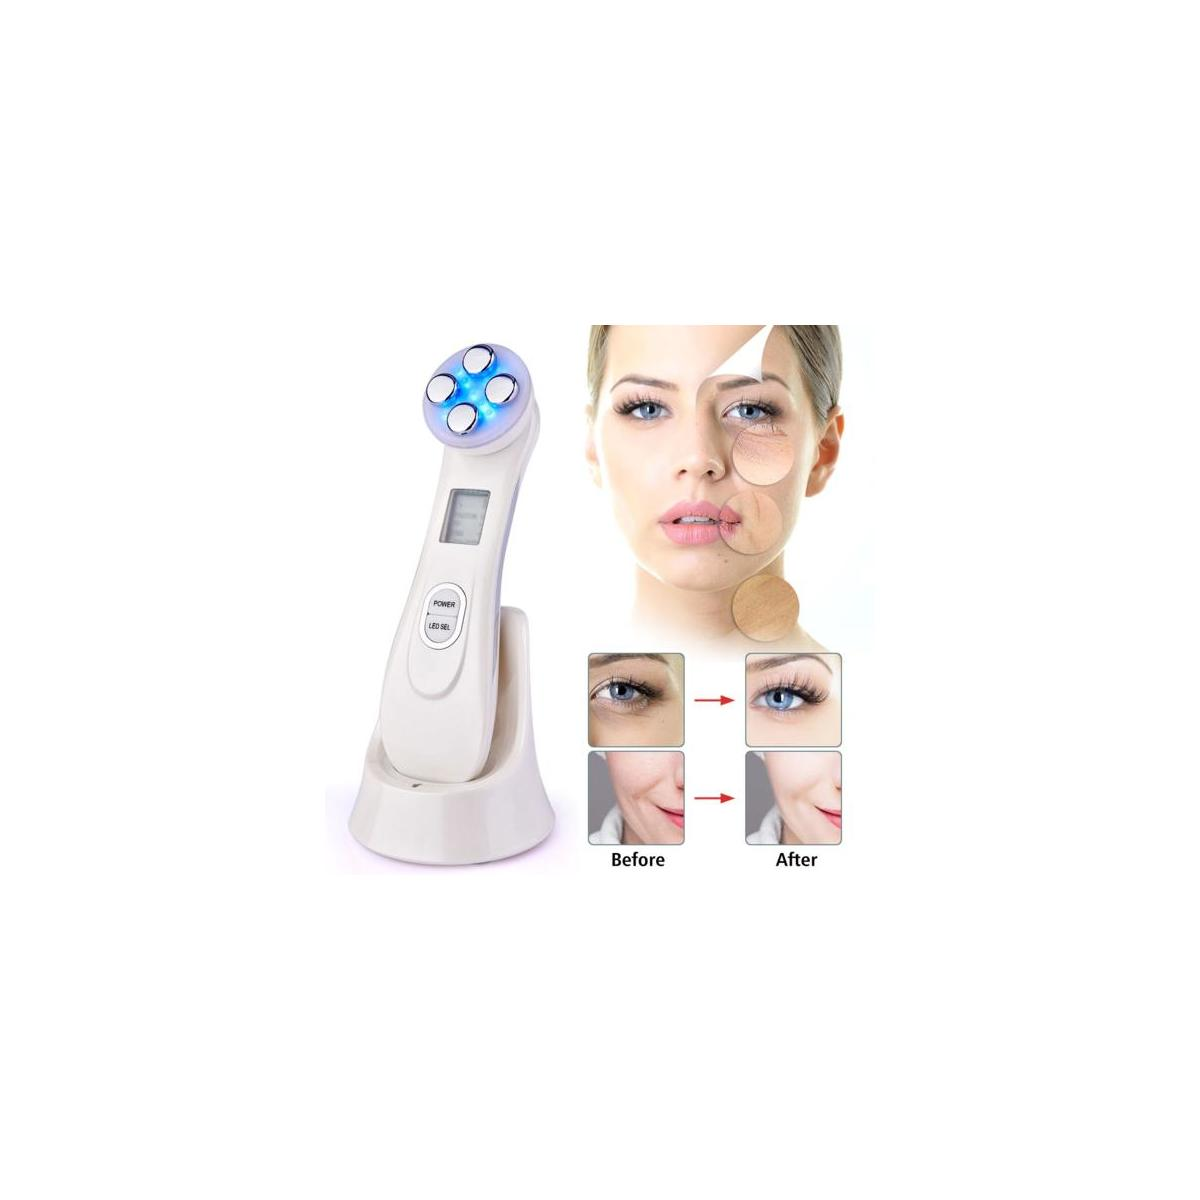 LED Photon Radio Frequency Skin Rejuvenation EMS Mesotherapy for Anti-Wrinkle Face Lift